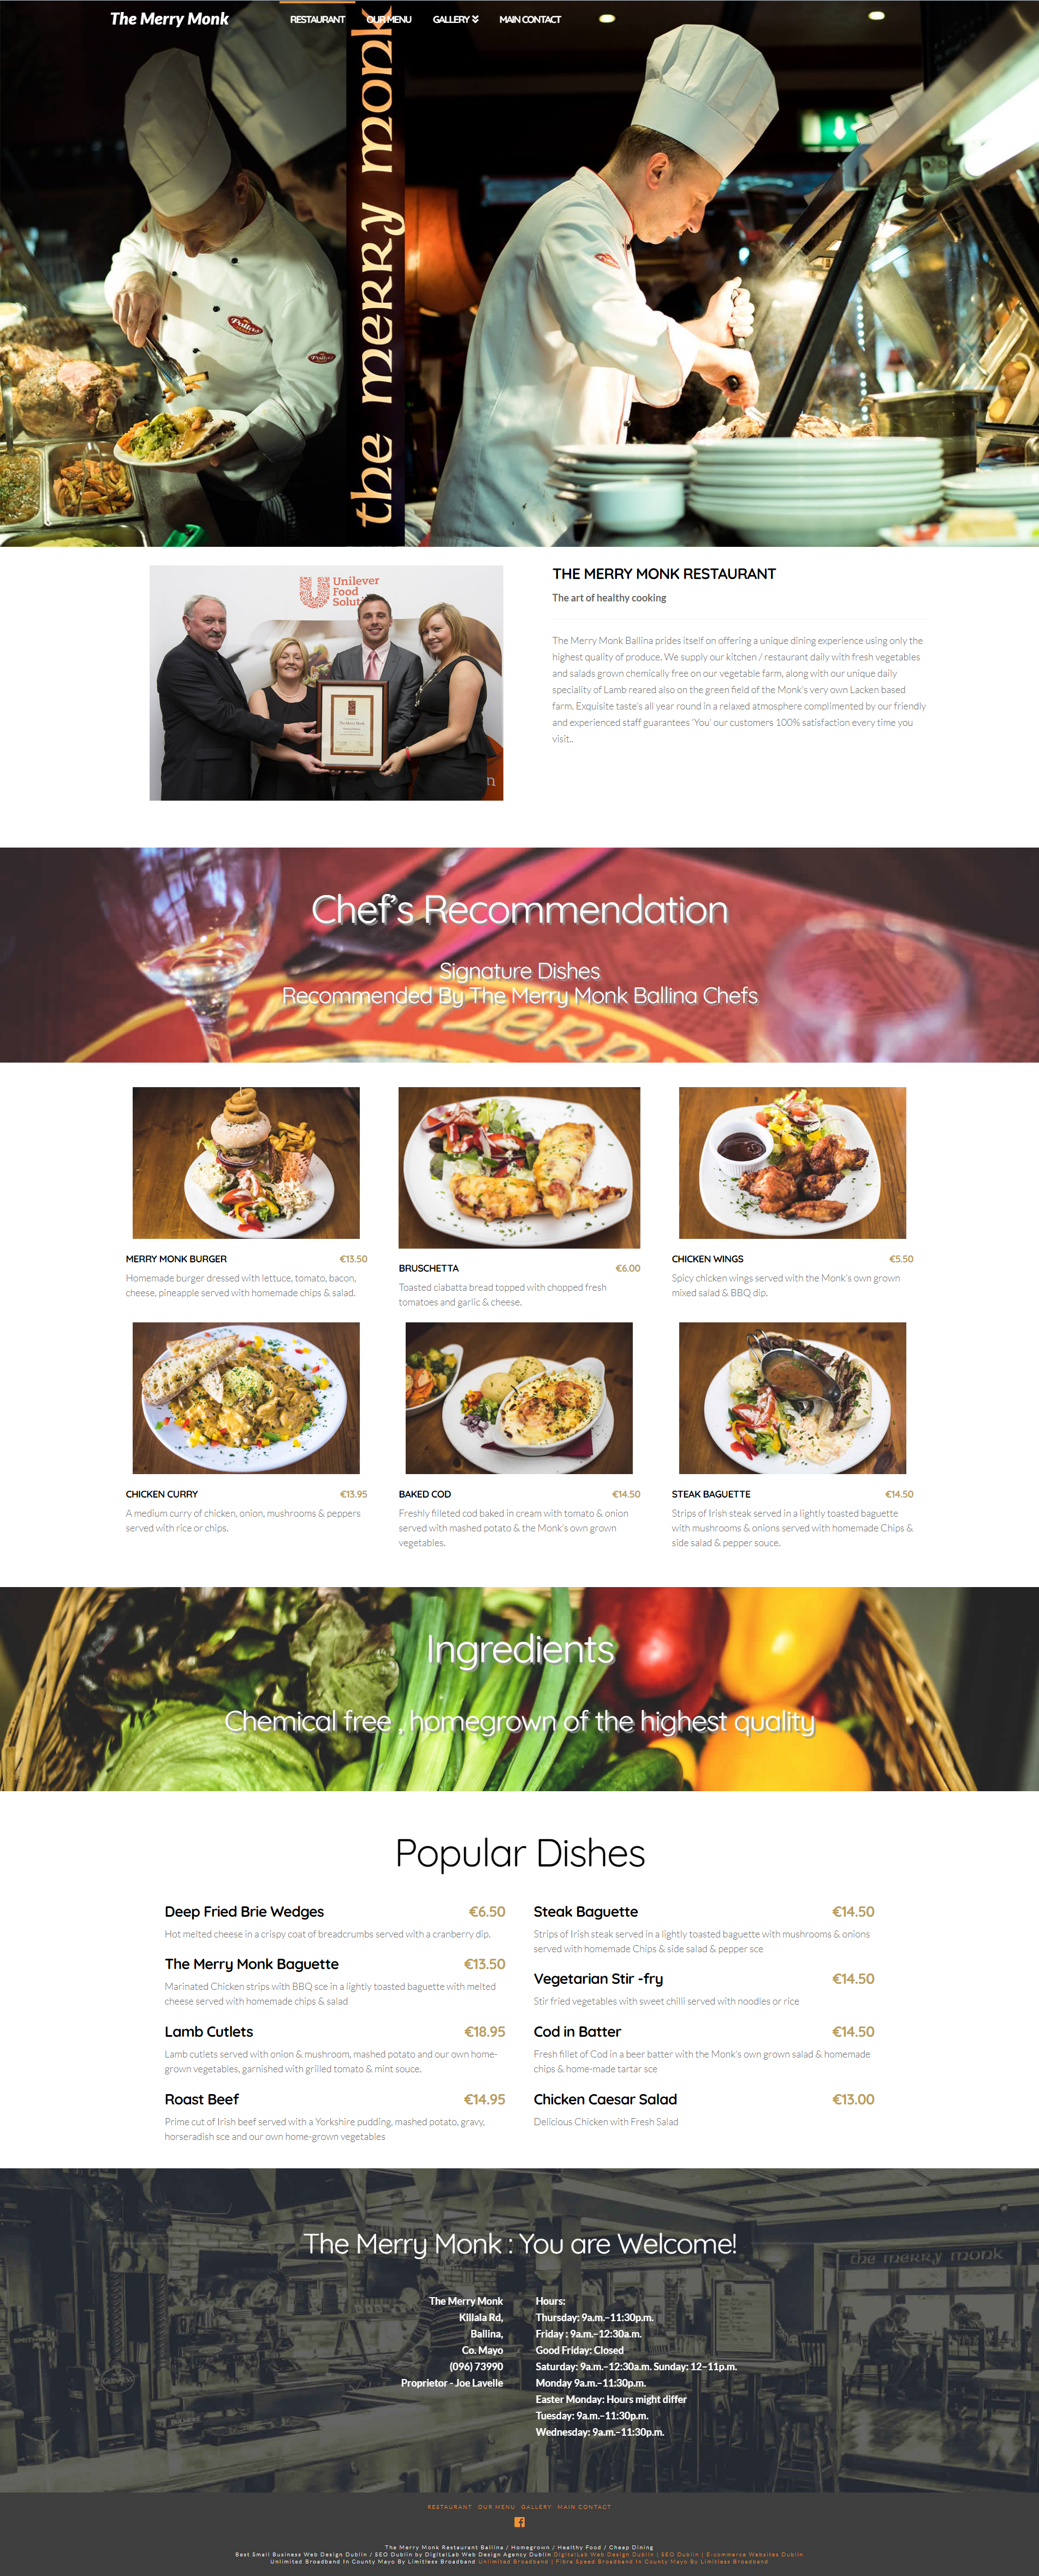 The Merry Monk restaurant ballina mayo website  designed and developed by DigitalLab web design agency dublin